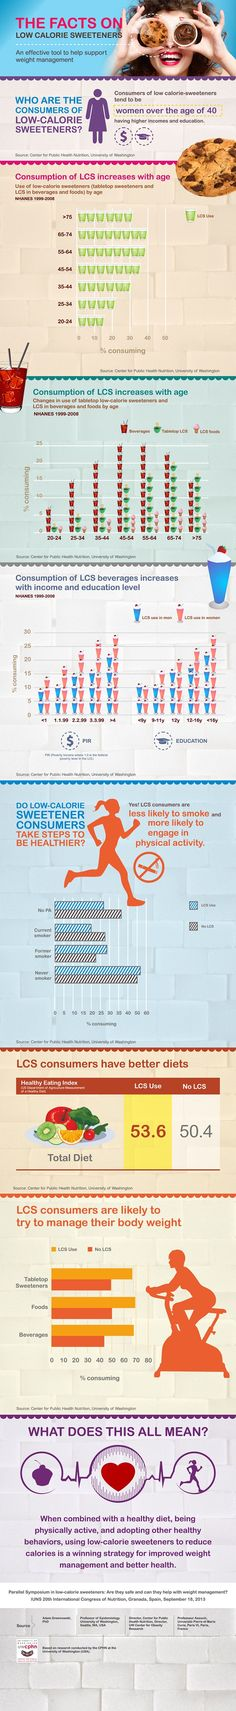 Infographic: The facts behind low calorie sweetener consumption